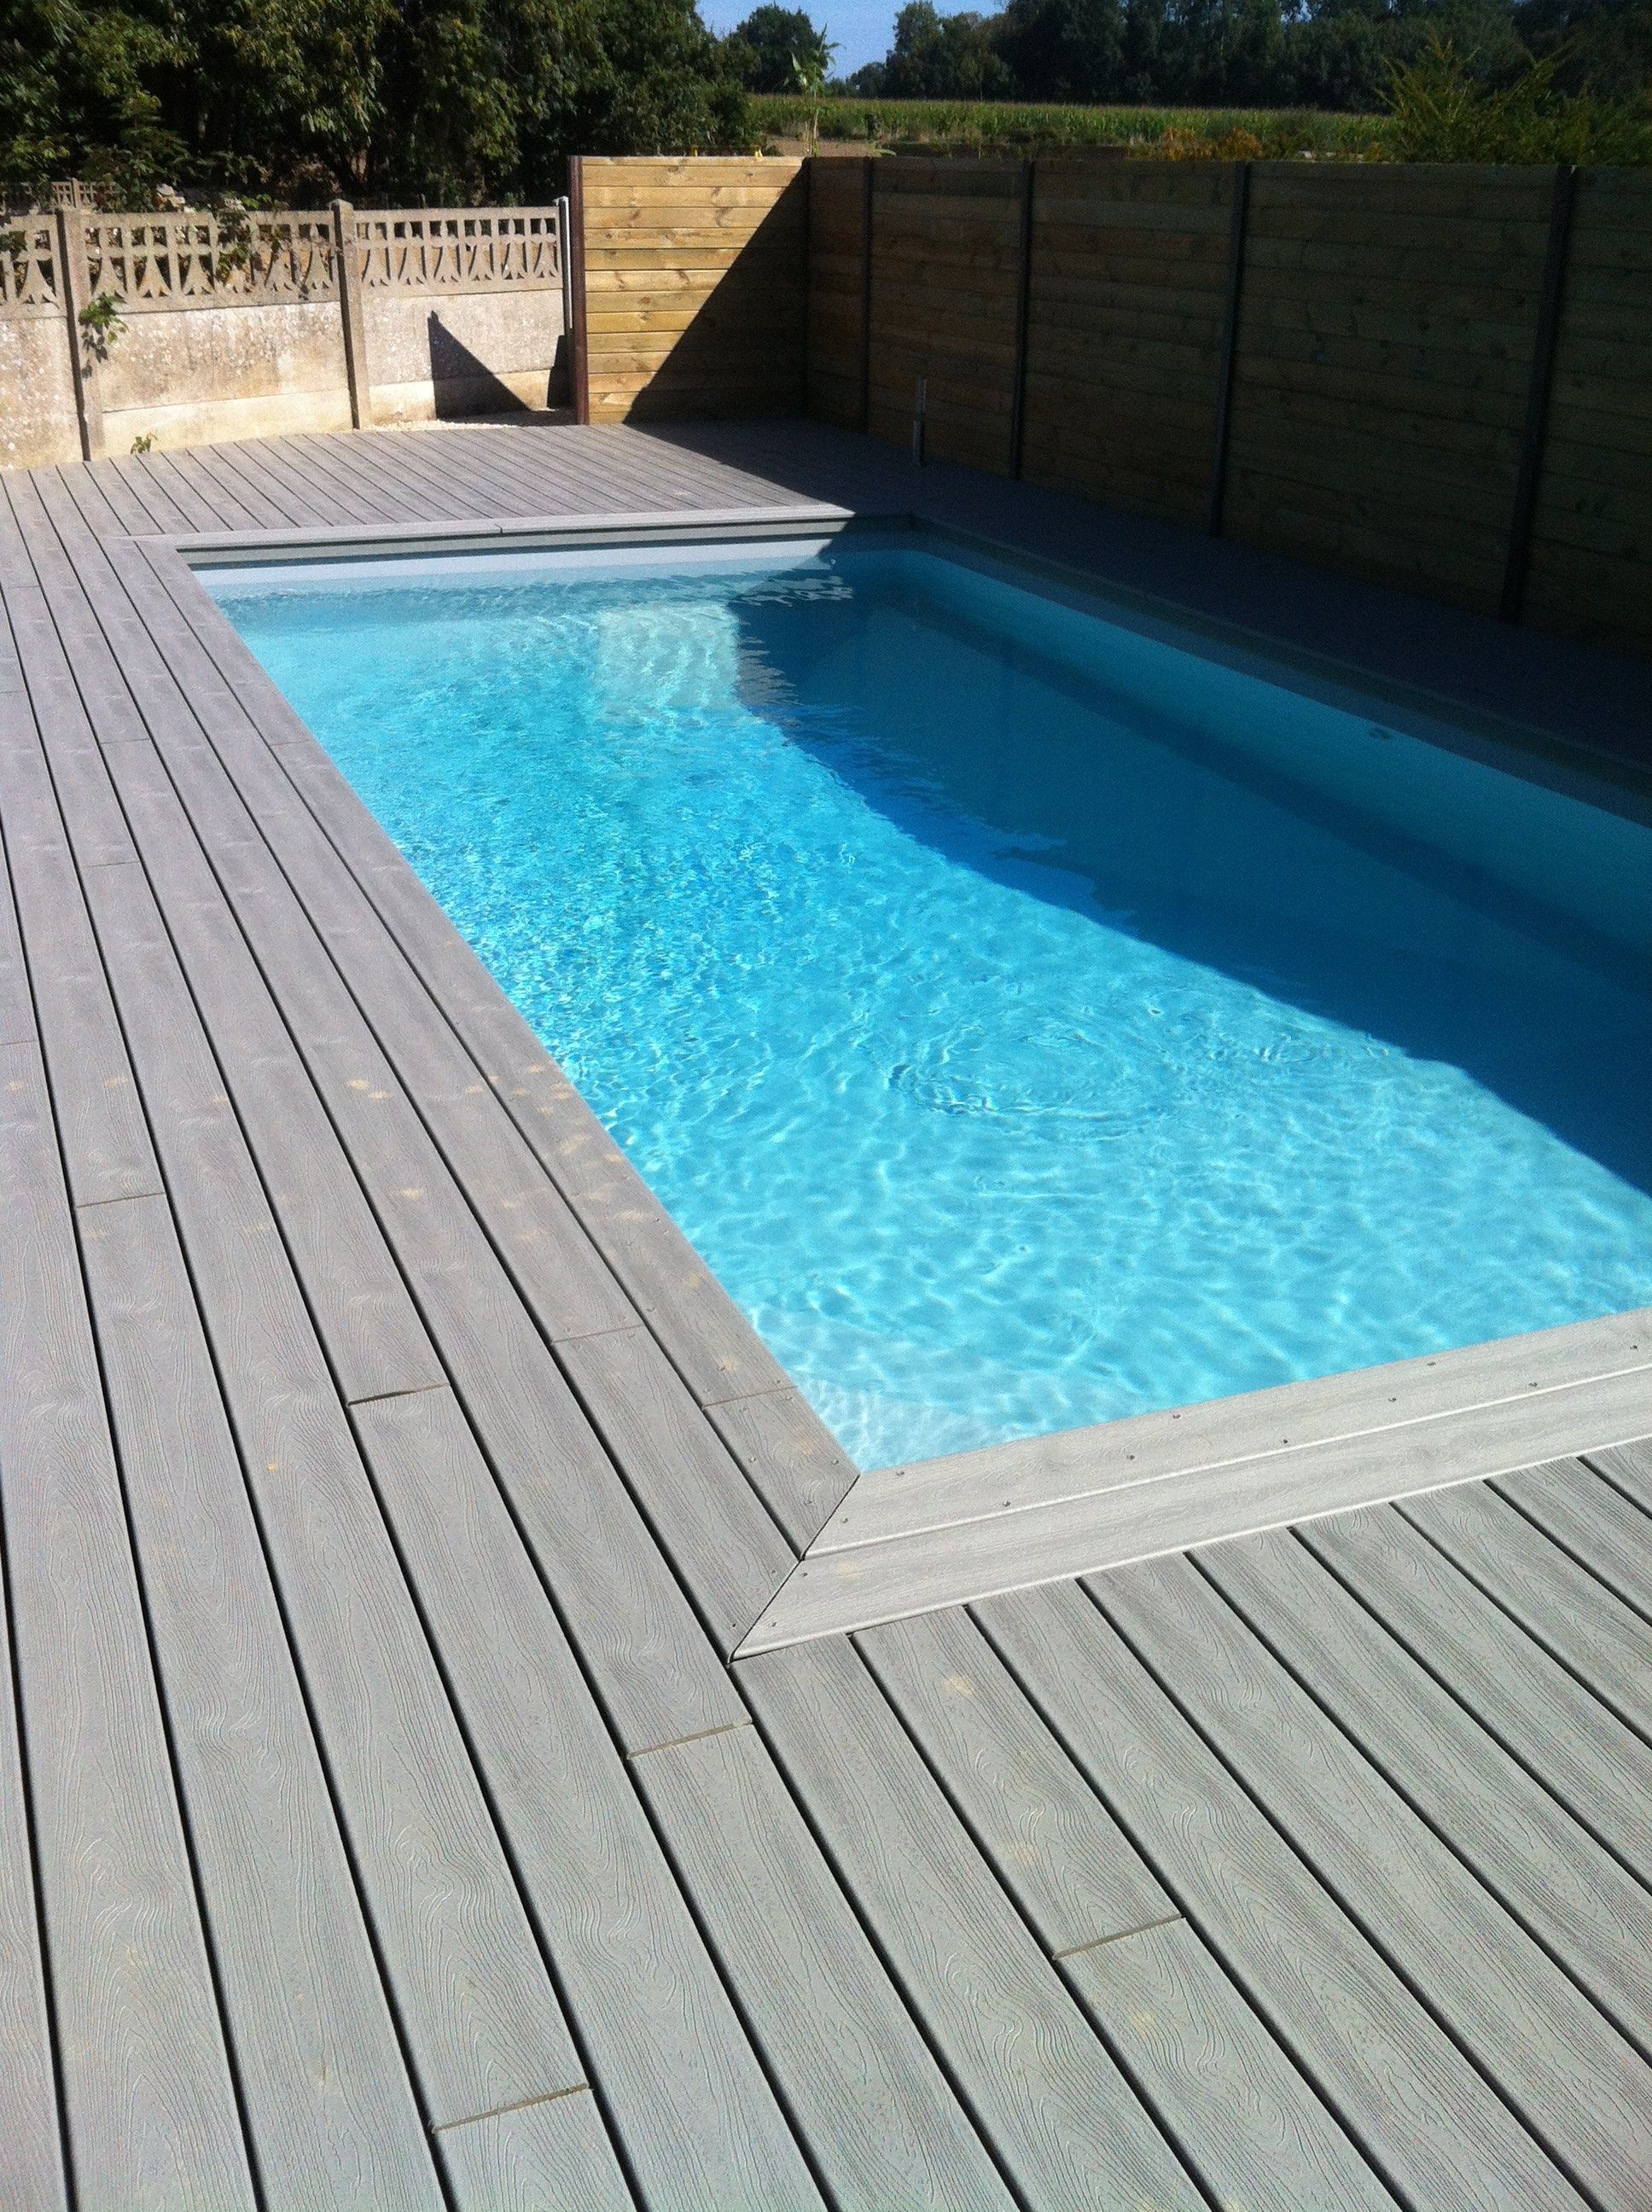 Pingl par erbear bearbear sur pools en 2019 swimming pool decks decks around pools et - Deco piscine hors sol ...